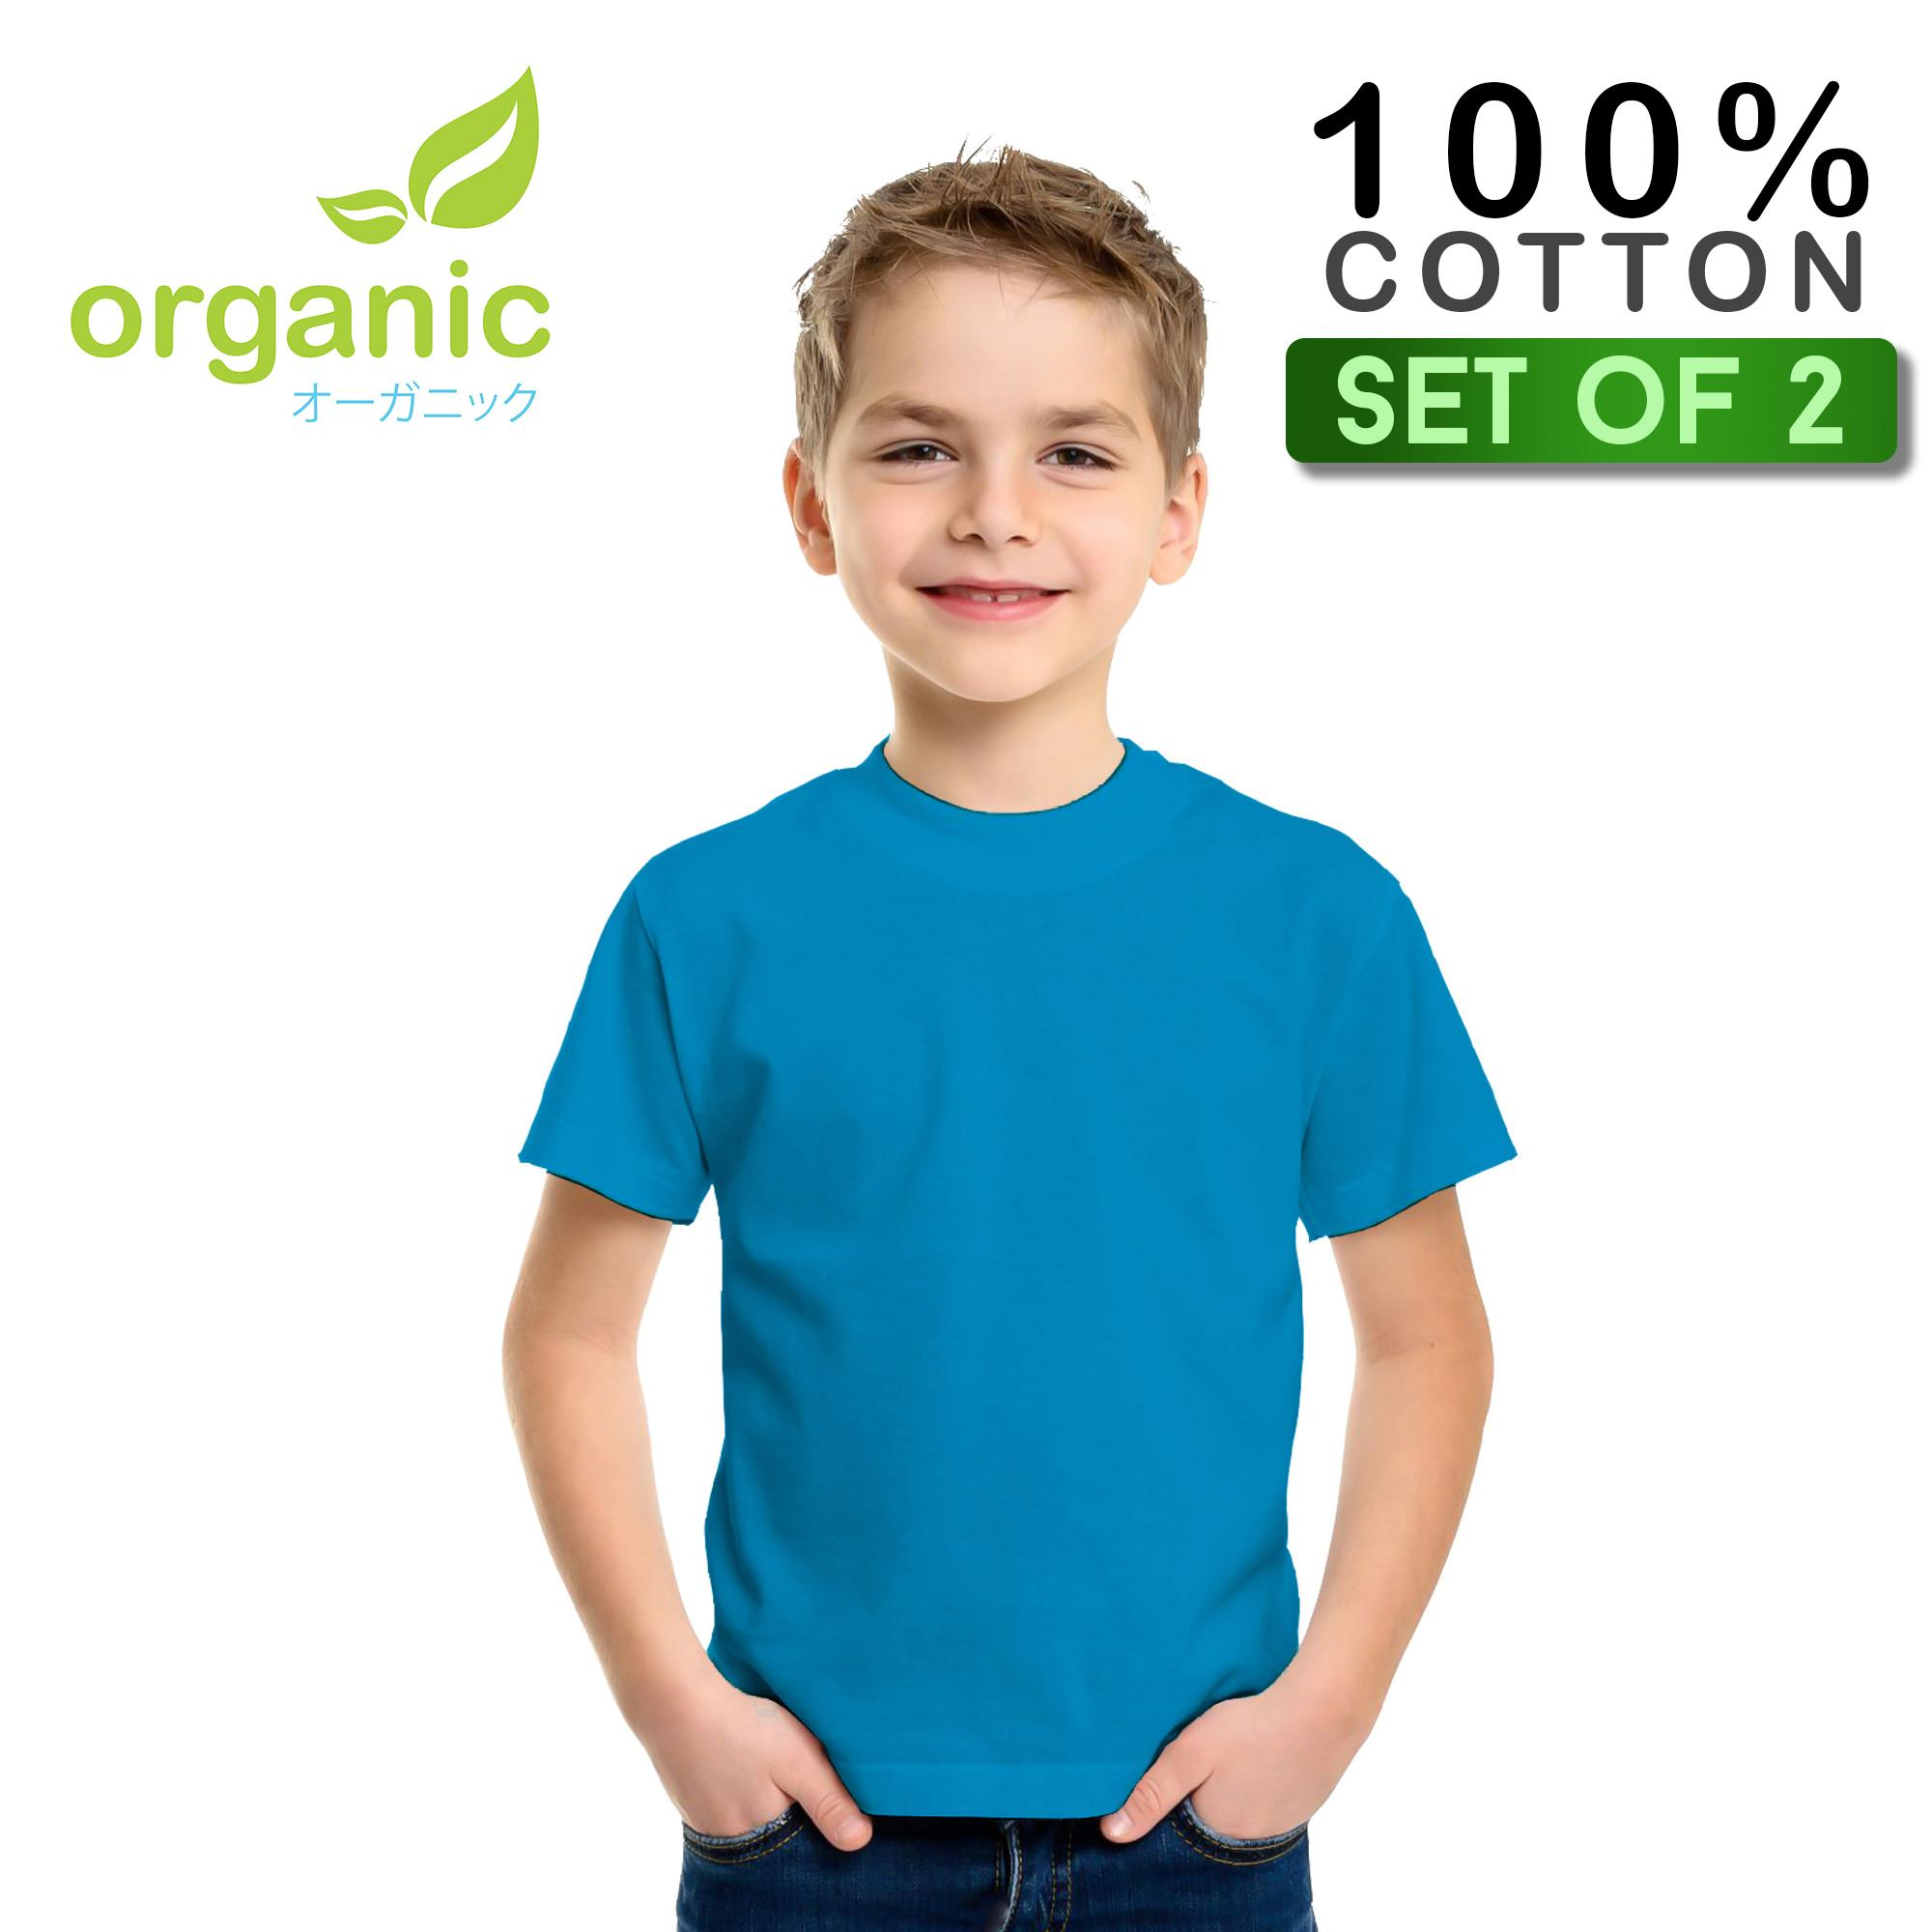 Organic Kids Round Neck (set Of 2) Tees T Shirt Tshirt Shirts Tshirts Tops Top For Kids By Organic.